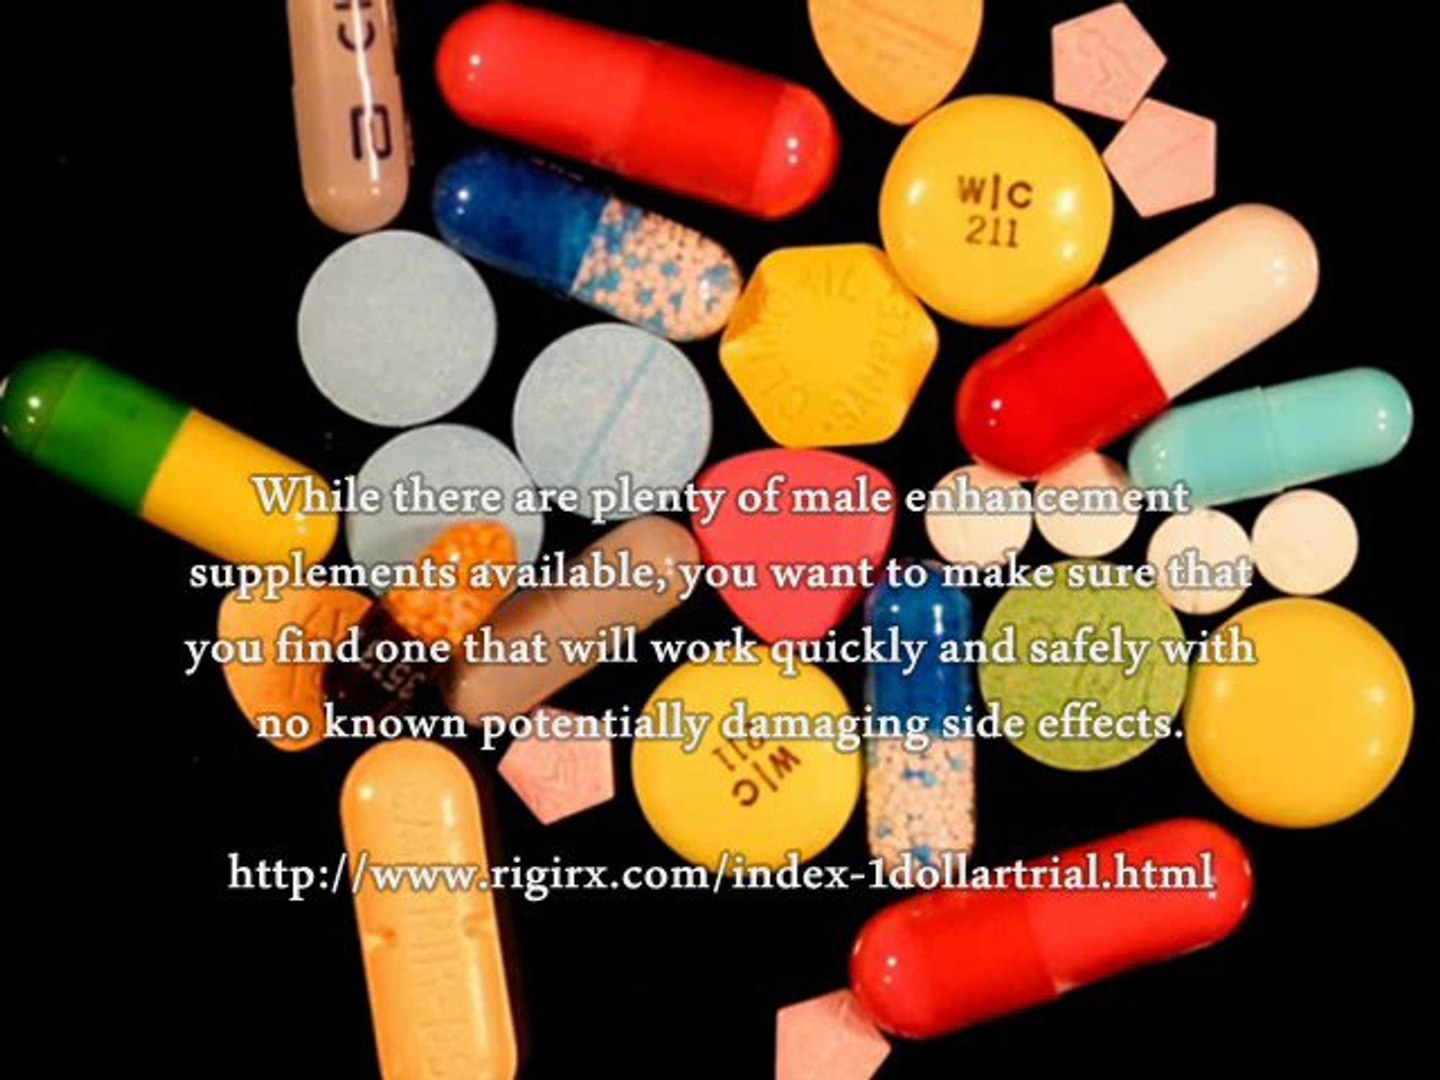 Sex Pills In The Philippines, Looking For The Best Sex Pills In The Philippines Visit Rigirx First